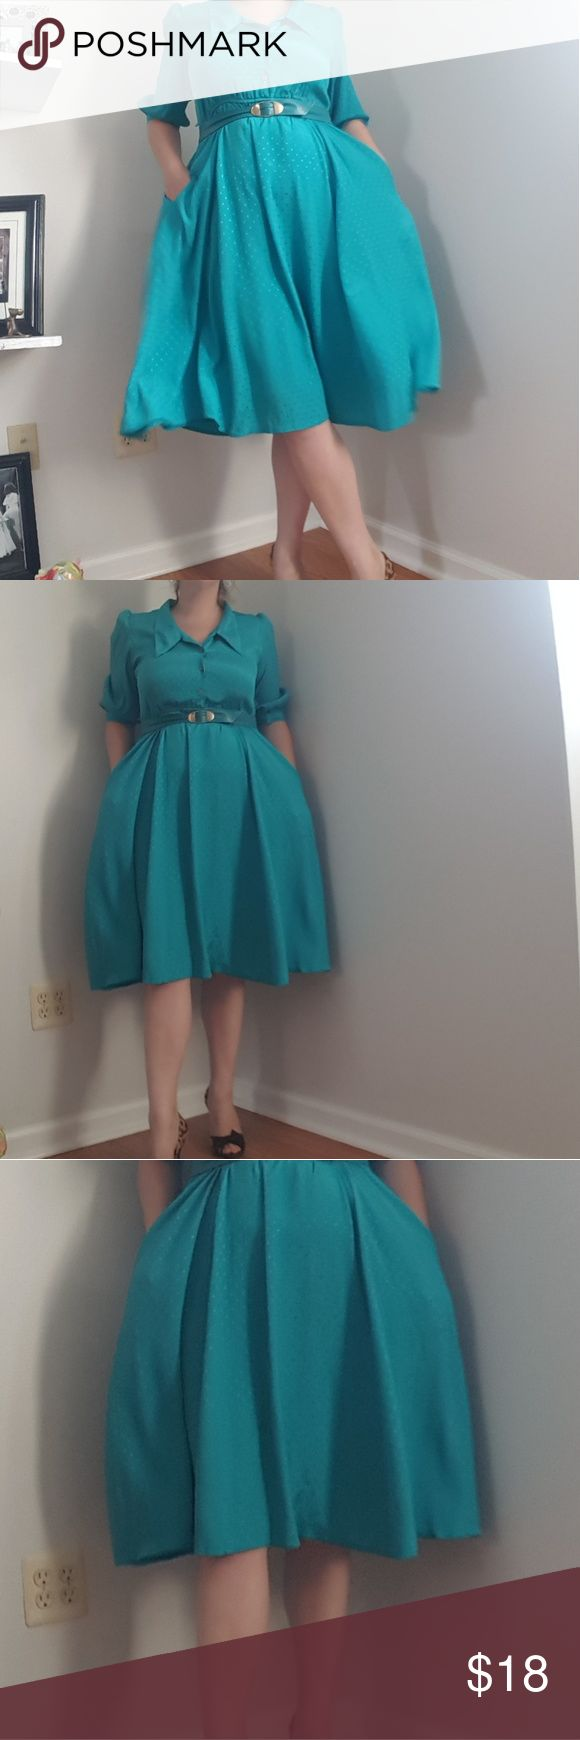 "Vintage Teal Shirt Dresd Vintage teal Dress by Halmode petites bust 21"" waist 16-20"" length 42"" belt not included I am a size 10/12 and it fits well Vintage Dresses"